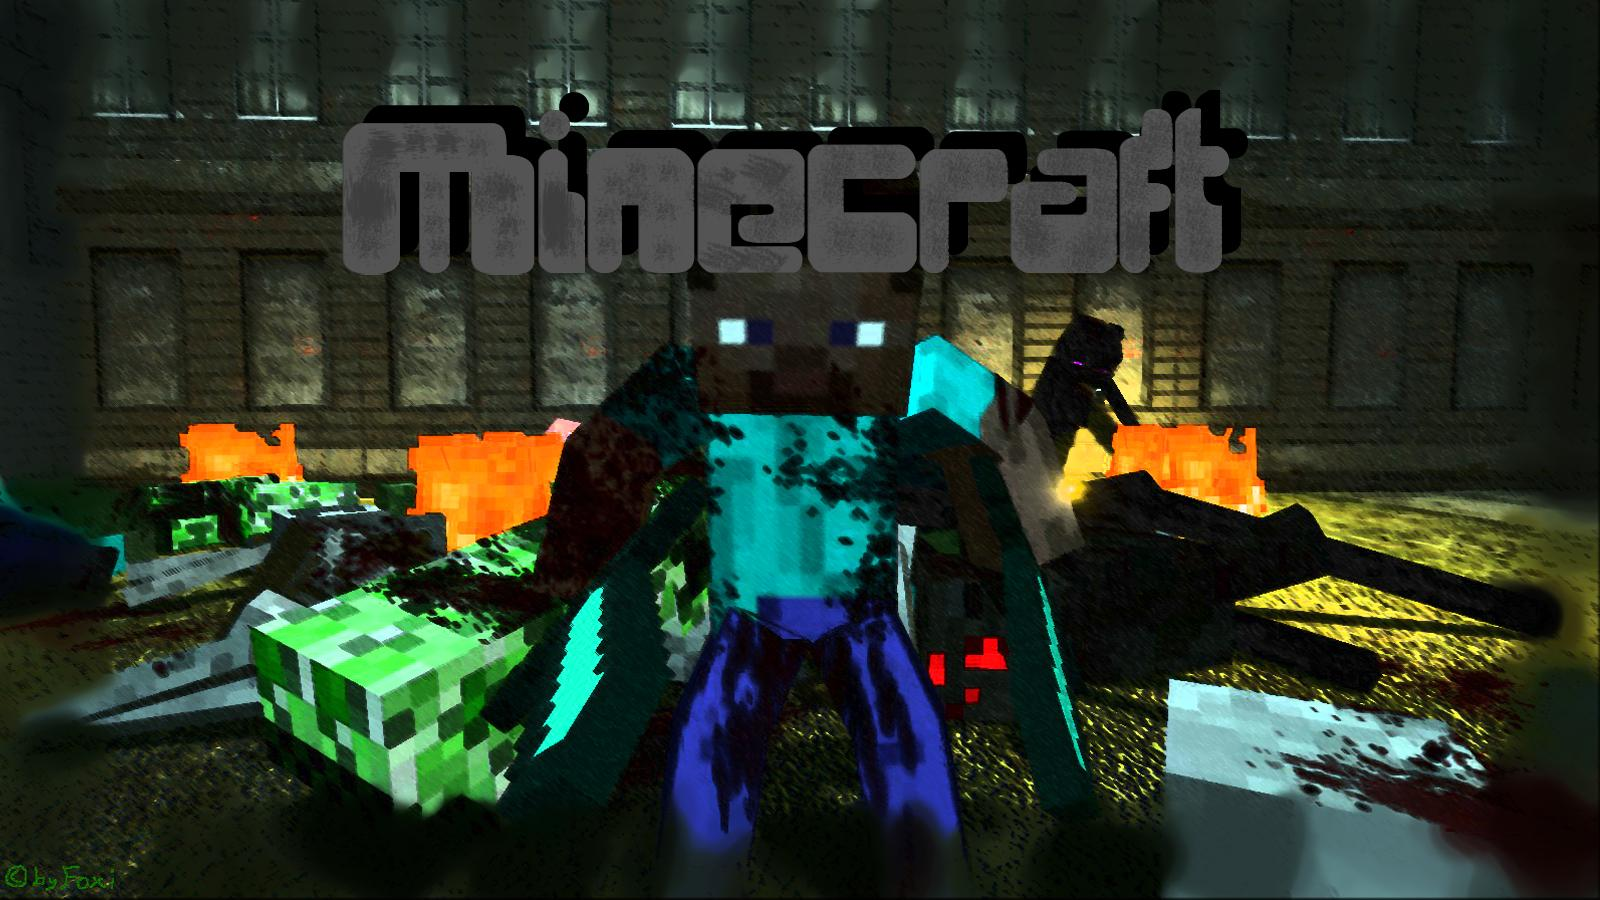 Awesome minecraft desktop background